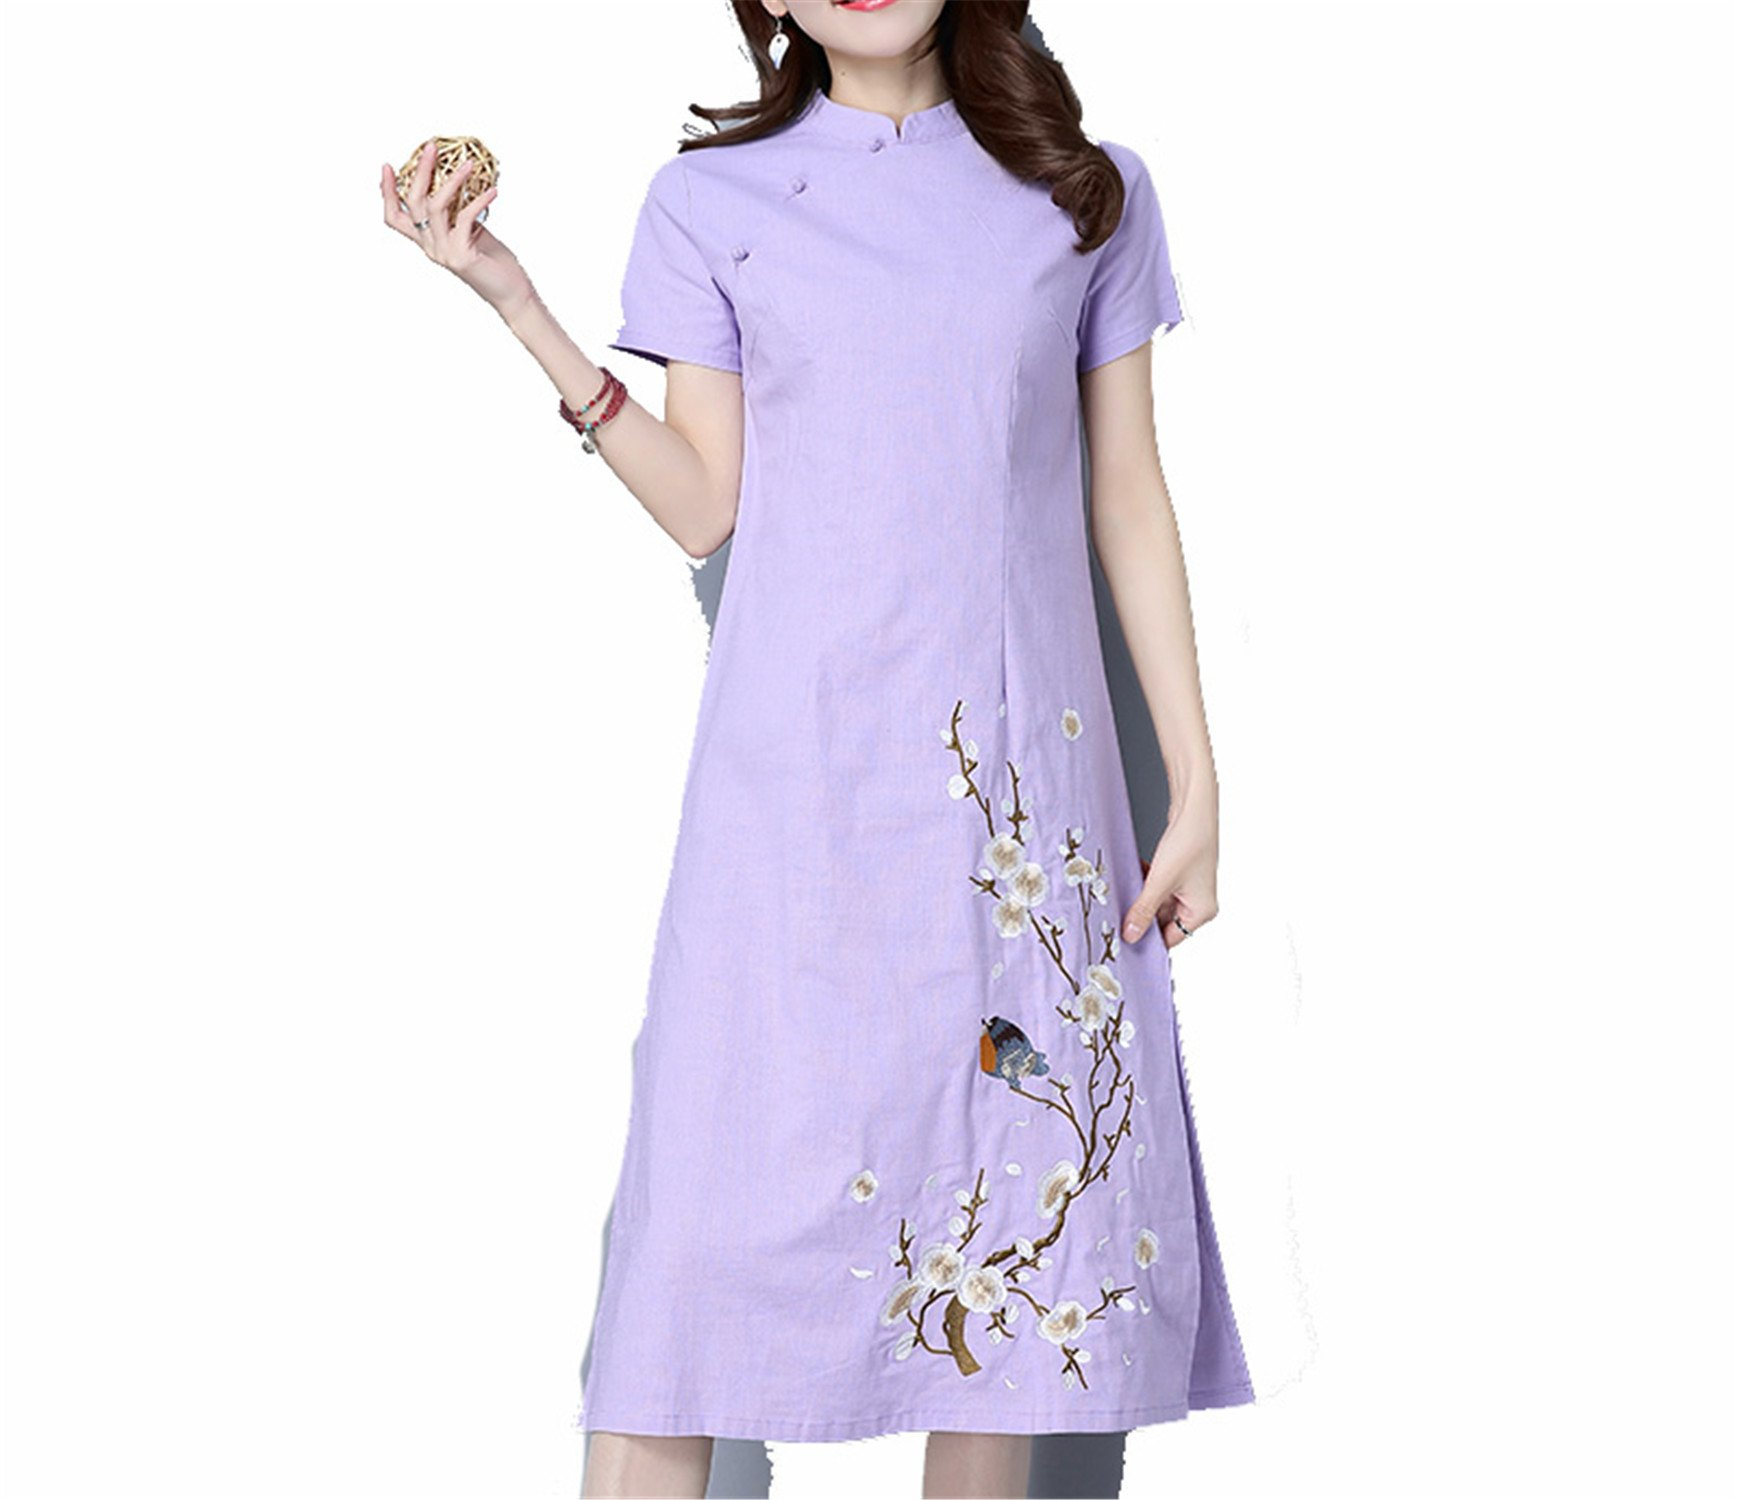 Coac3 Print Chinese Traditional Dress Cheongsam Women Mandarin Collar Oriental Dresses Evening Dress Color1 XXXL